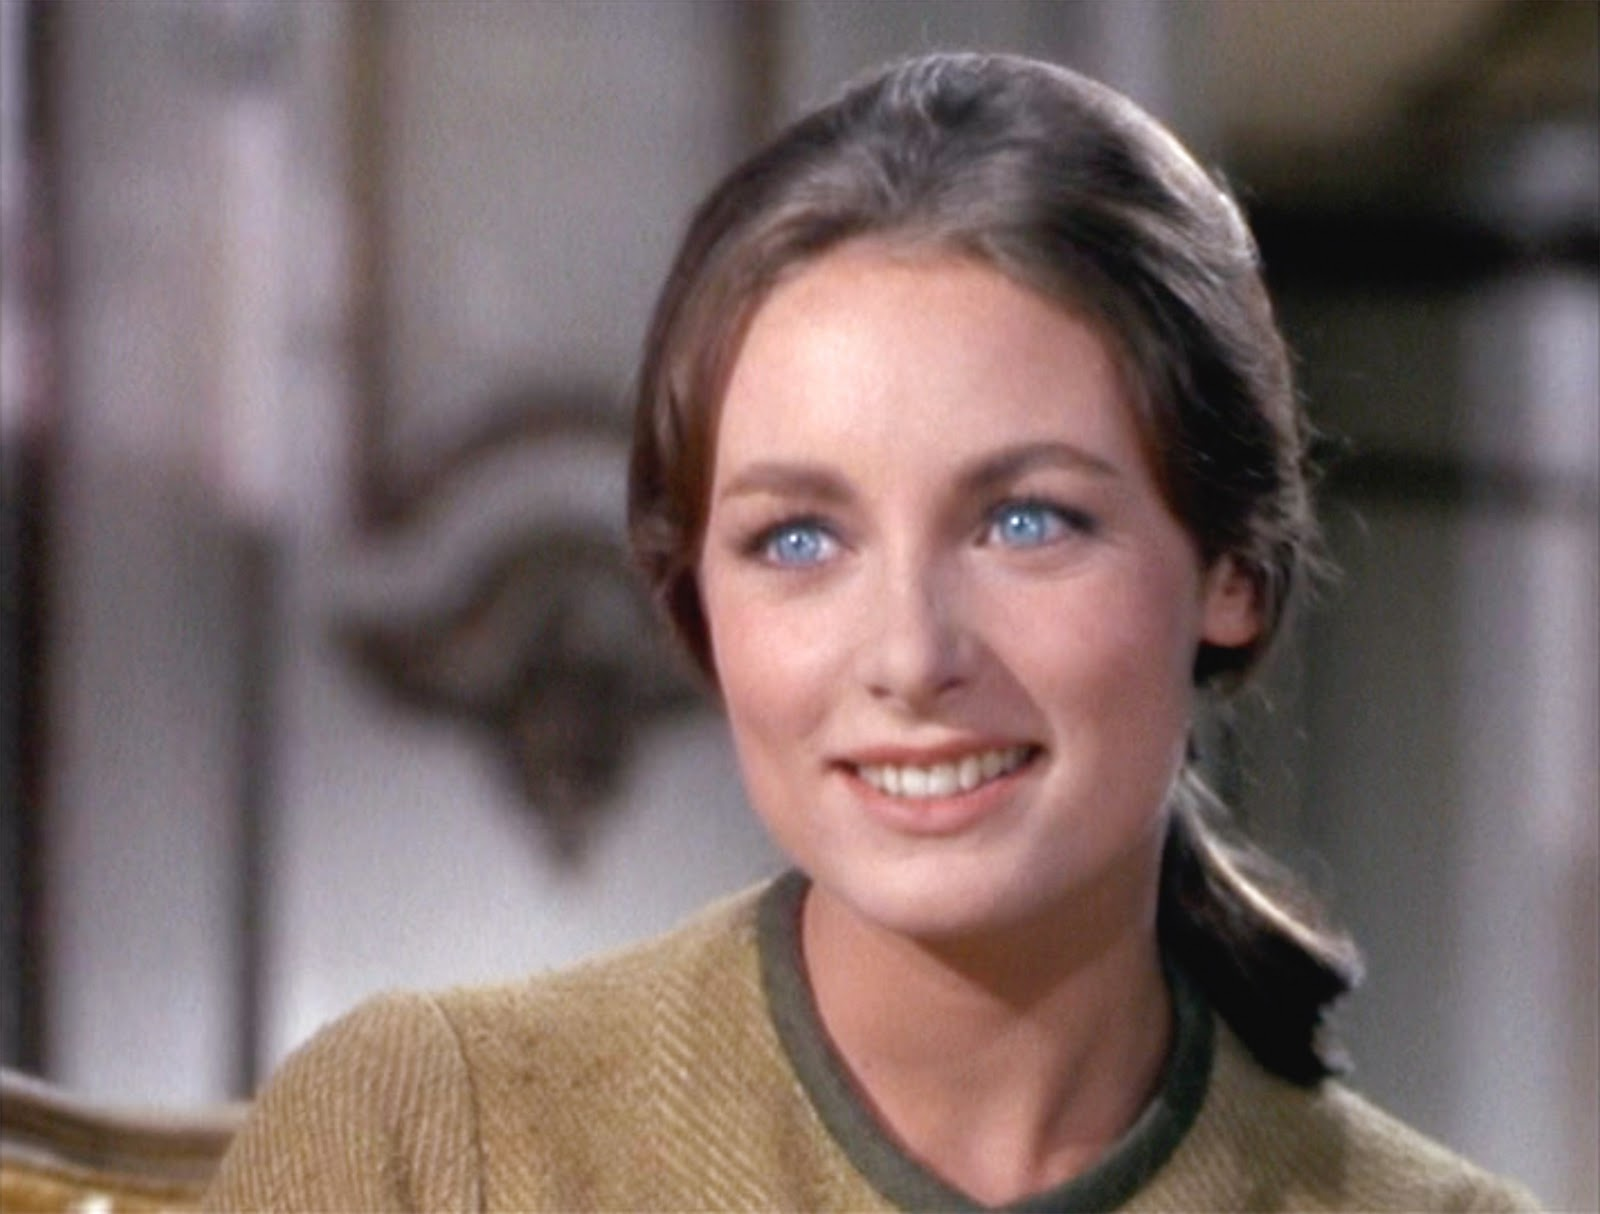 Sound Of Music Actress, Charmian Carr Has Died